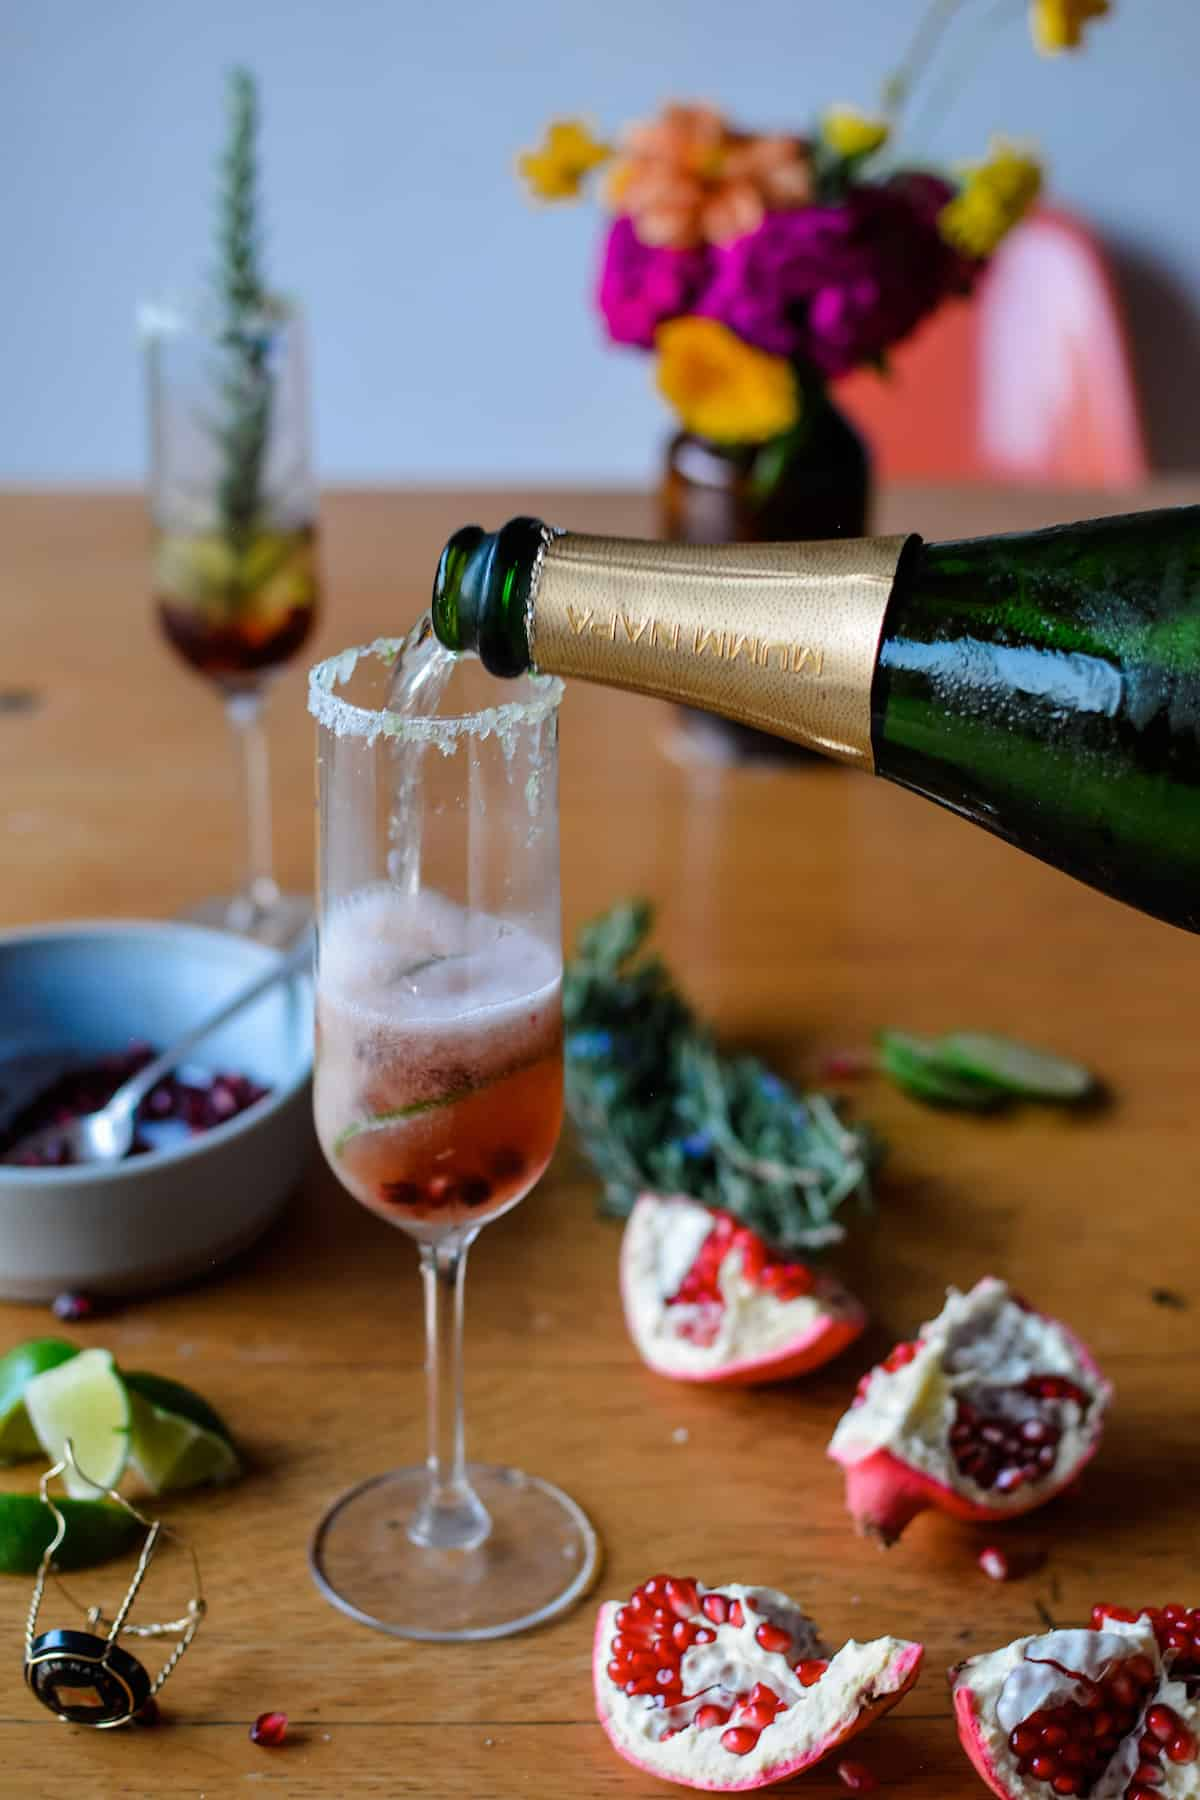 A champgane flute sitting on a wood table with pomegranates and lime slices in it and a bottle of sparkling wine pouring wine into it.